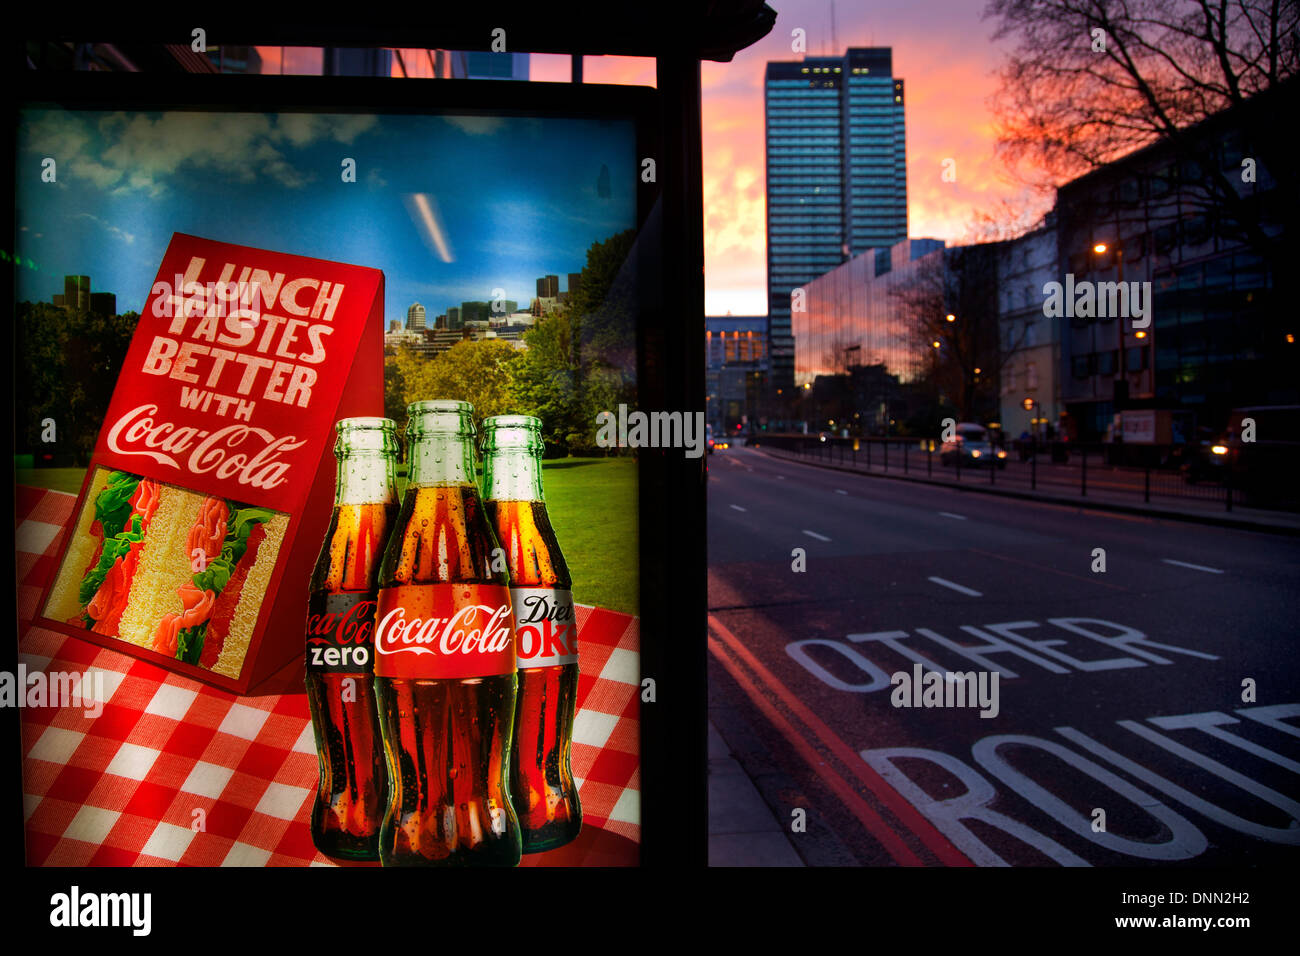 Coca-Cola advertising sign on bus stop at dusk, Warren Street, London - Stock Image